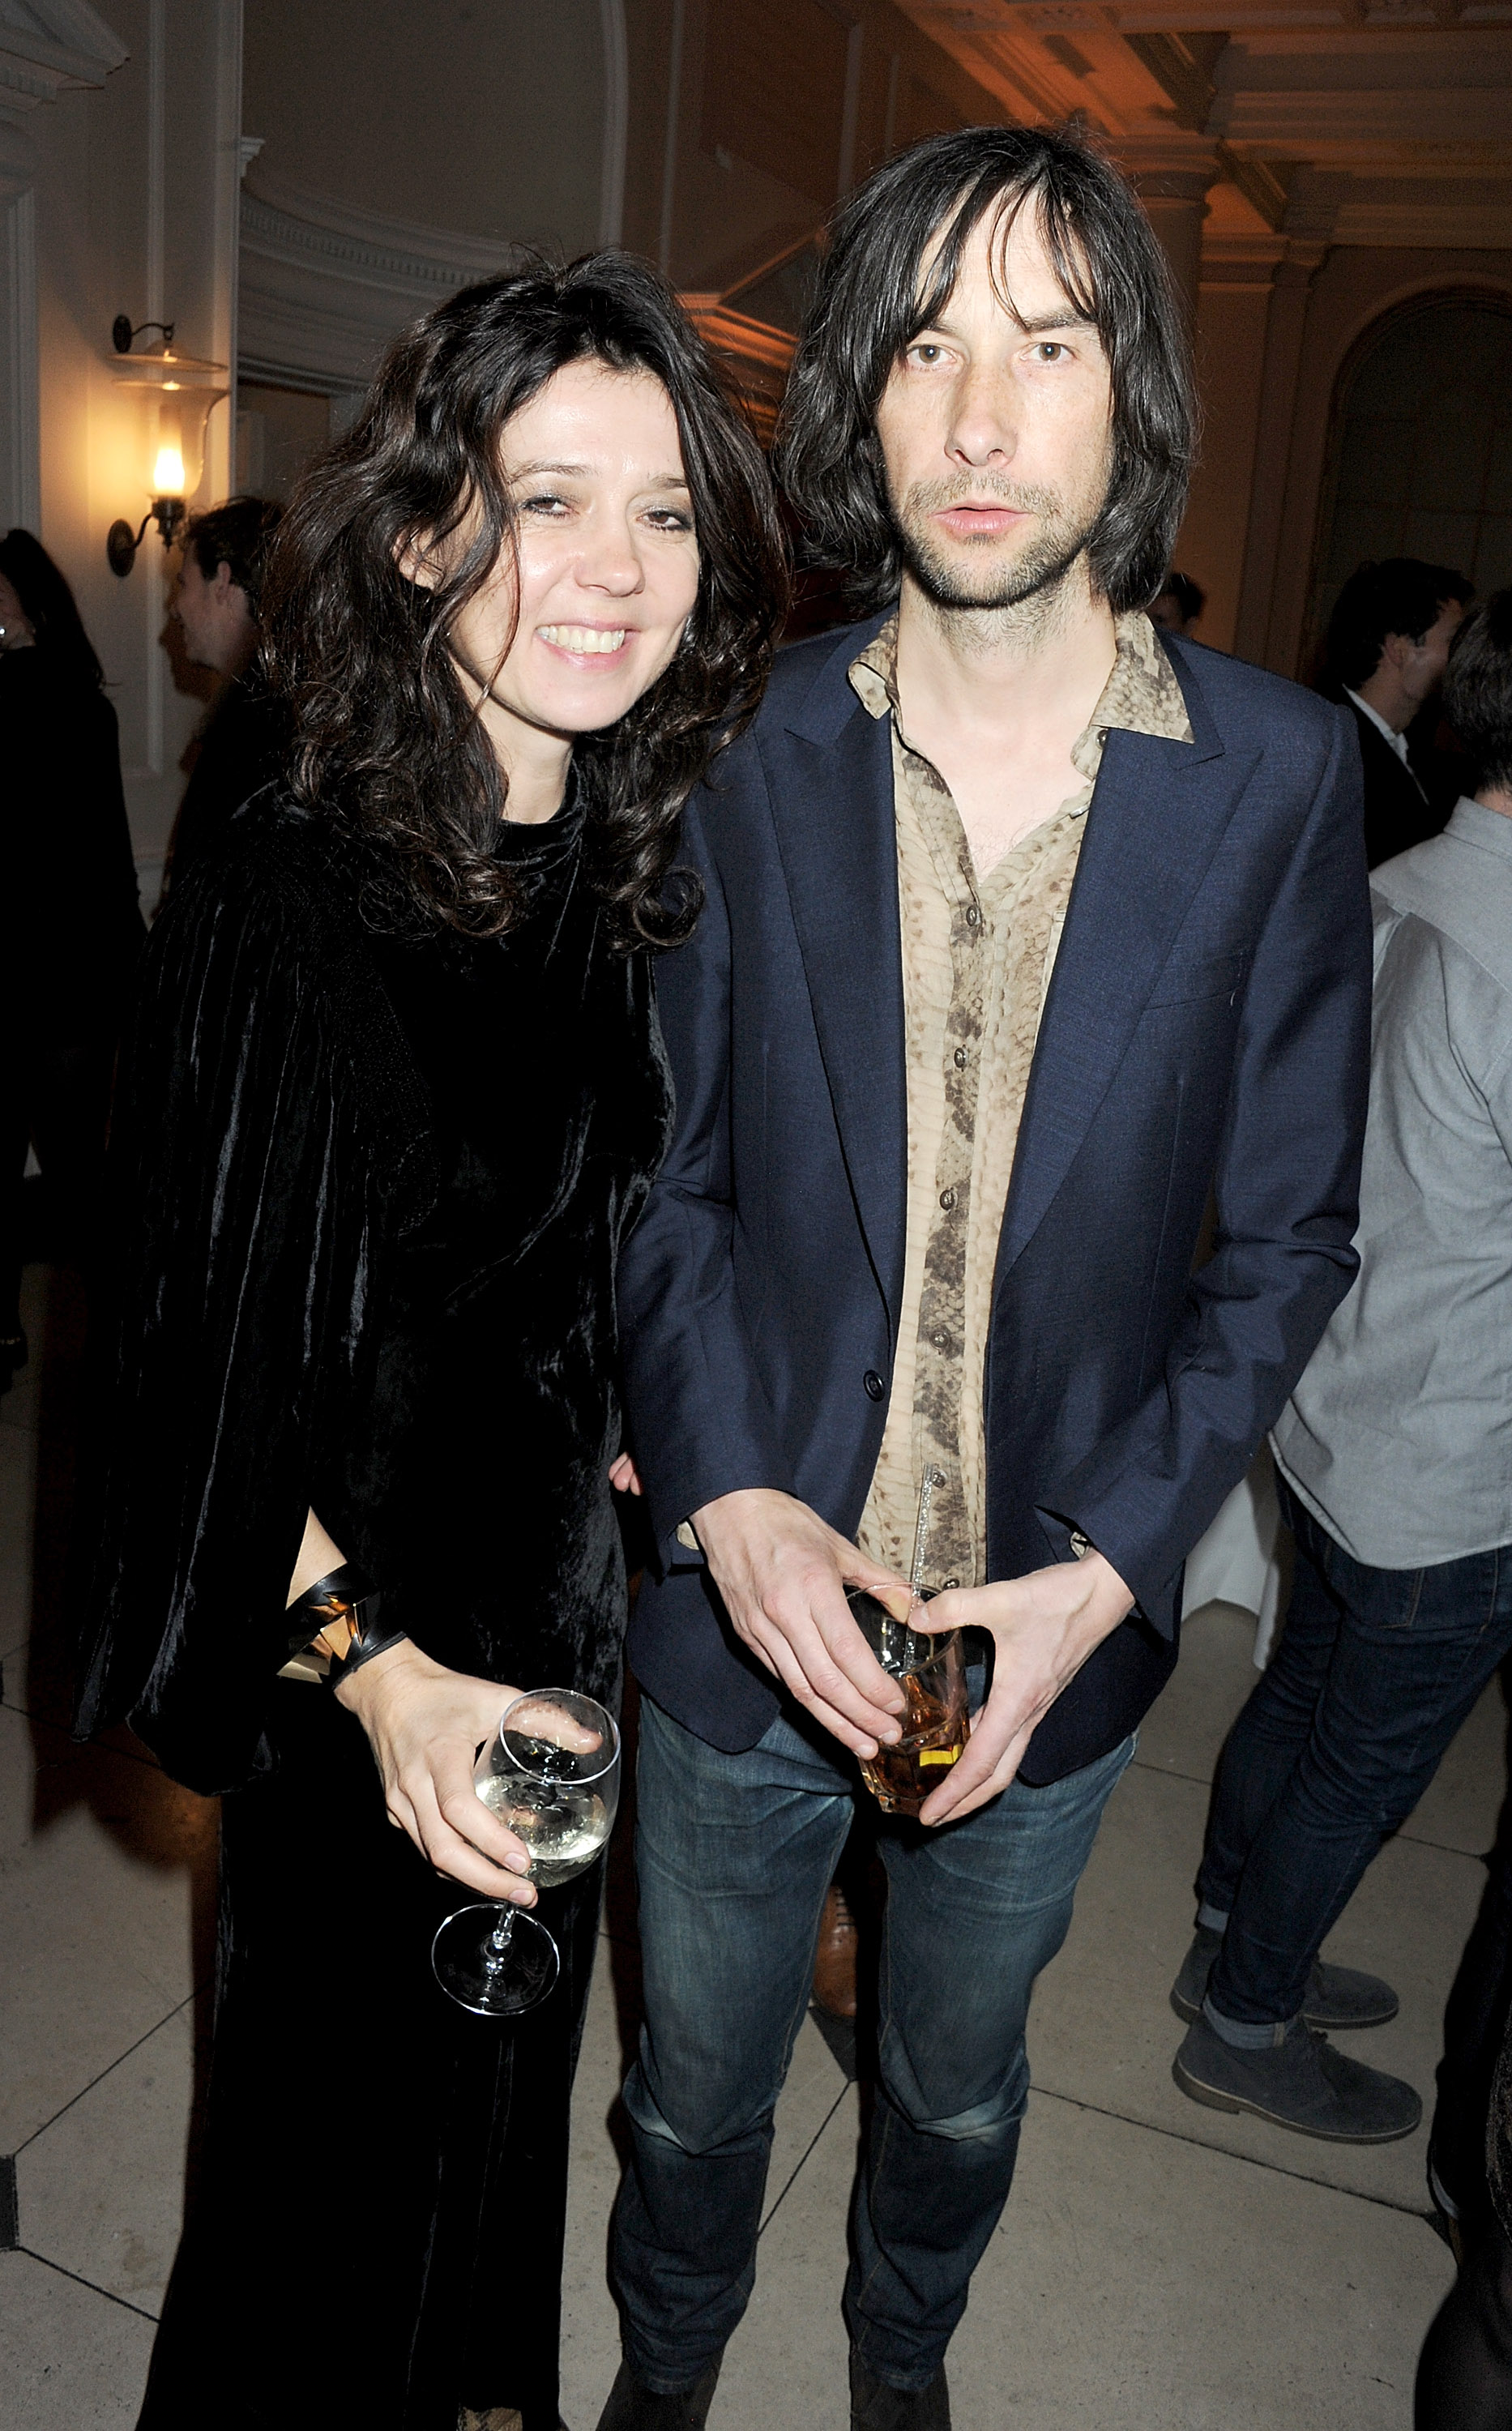 Dazed & Confused 20th Anniversary Party